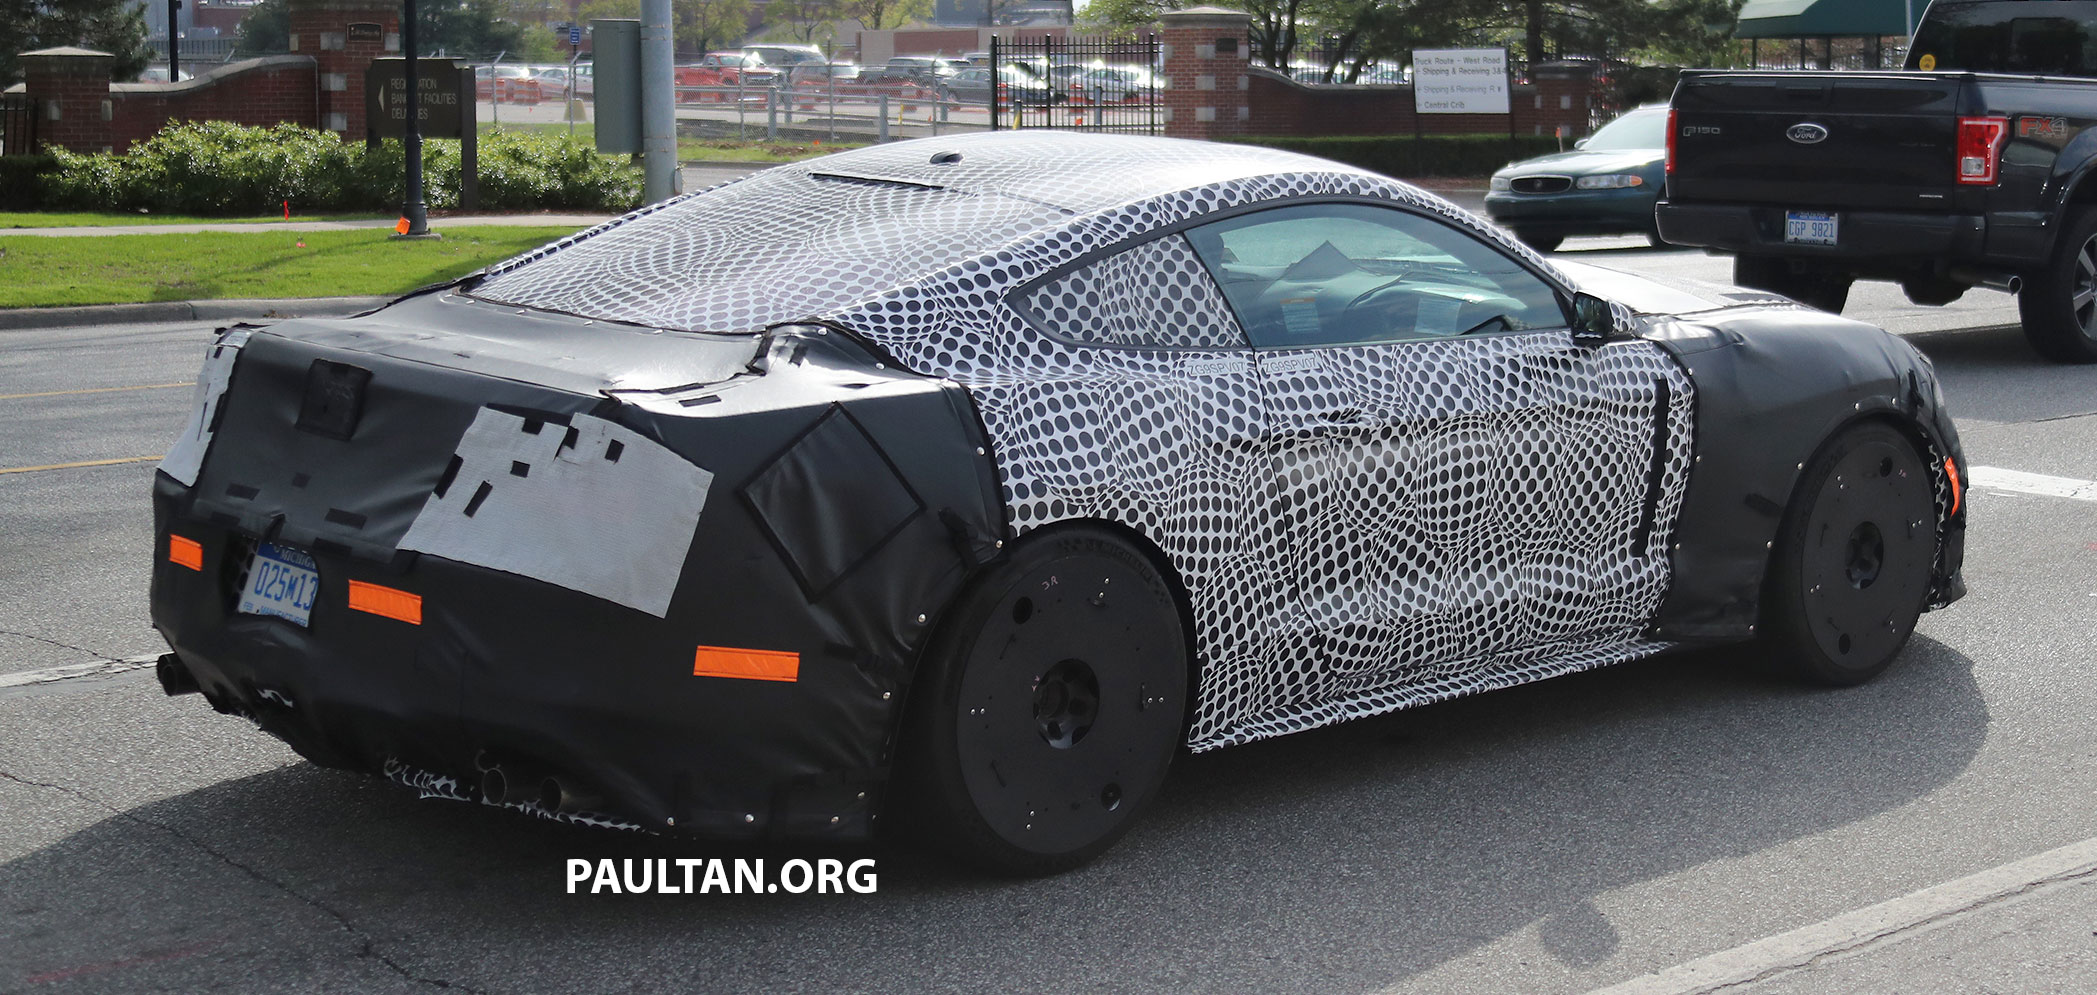 2019 Gt 500 >> SPIED: 2019 Ford Mustang GT500 – twin-turbo V8? Paul Tan - Image 655524